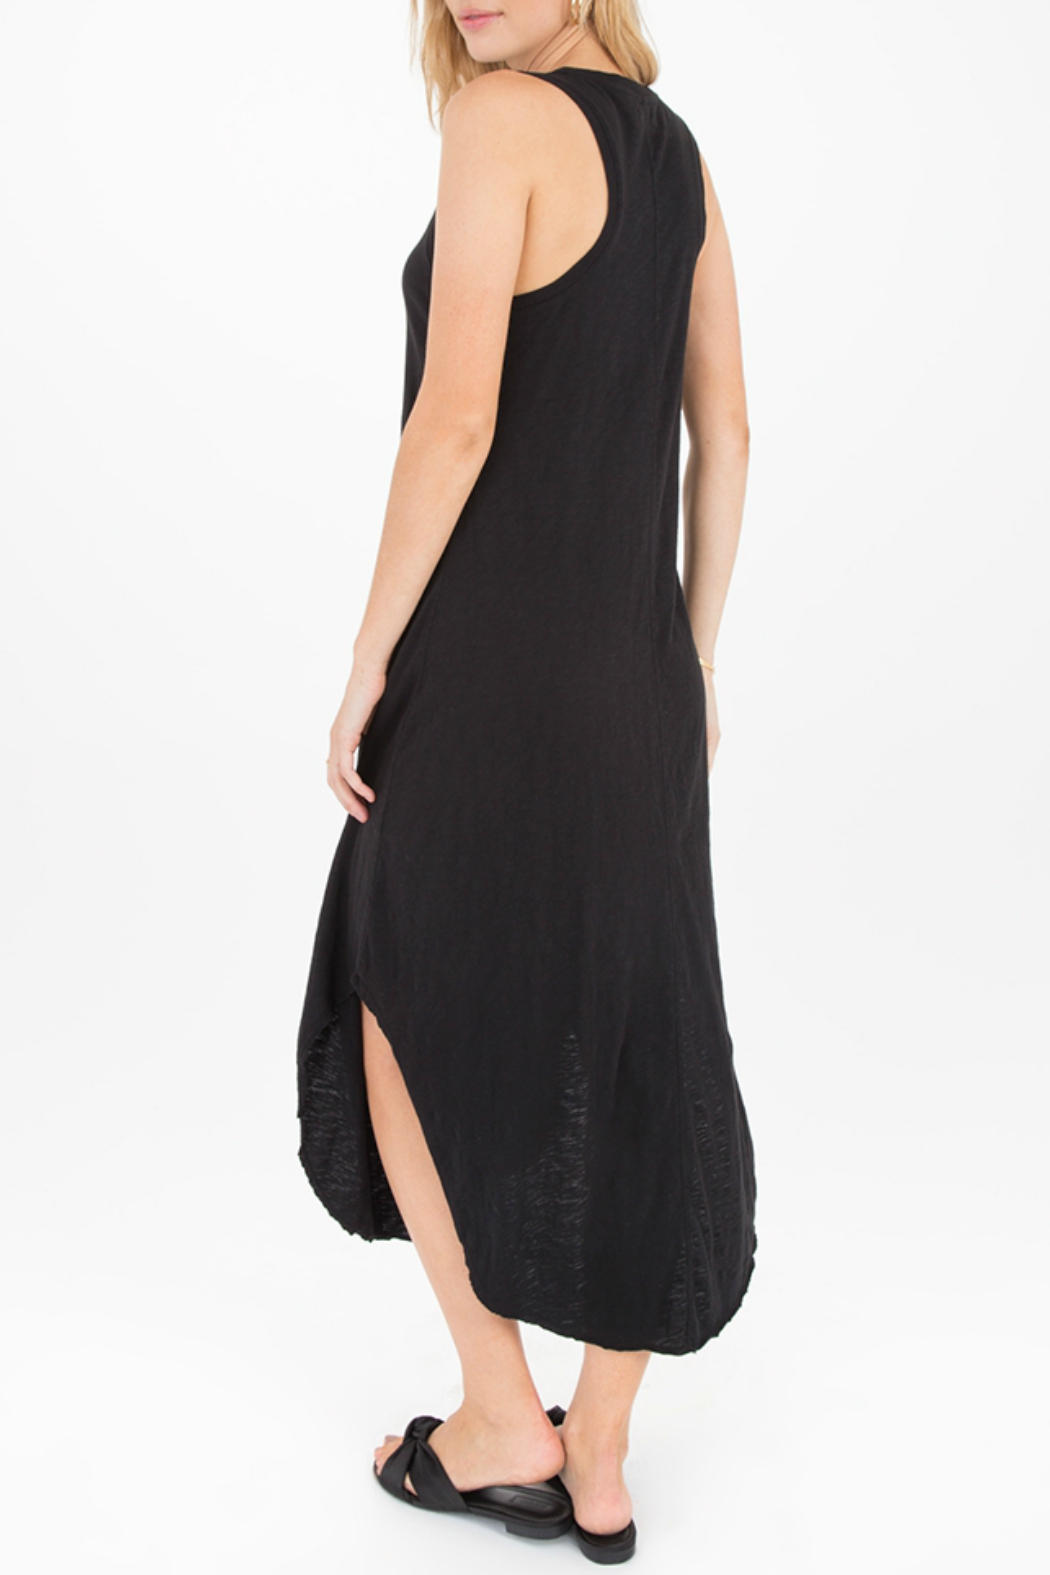 z supply The Reverie Maxi Dress - Front Full Image